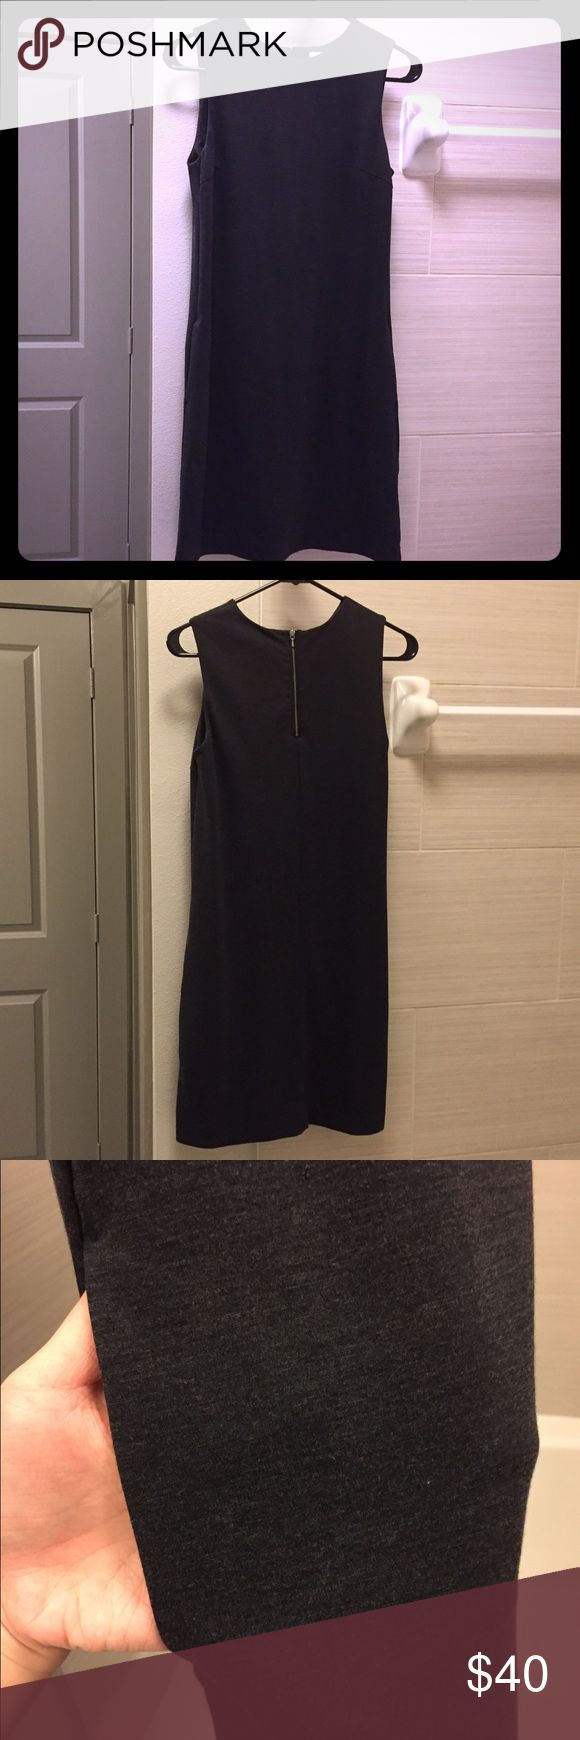 Uniqlo Dress - Dark Gray Preowned, only worn once. Looks like new ✨😁 Size XS. The dress is in very good condition, with zero stains and tears. This dress is very versatile and is good for everyday wear! Uniqlo Dresses Midi